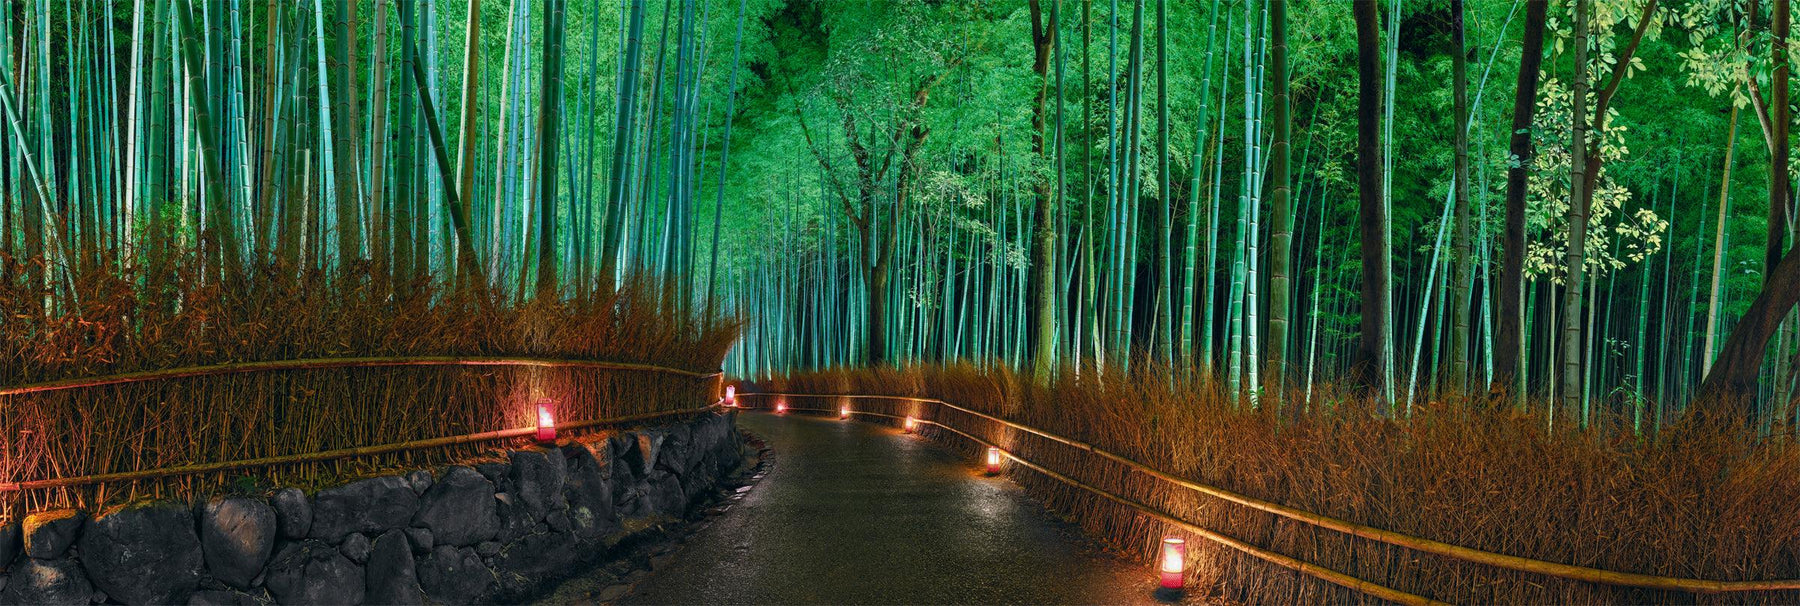 Path lined by a yellow grass fence leading through a green bamboo forest lit up at night by lanterns in Kyoto Japan